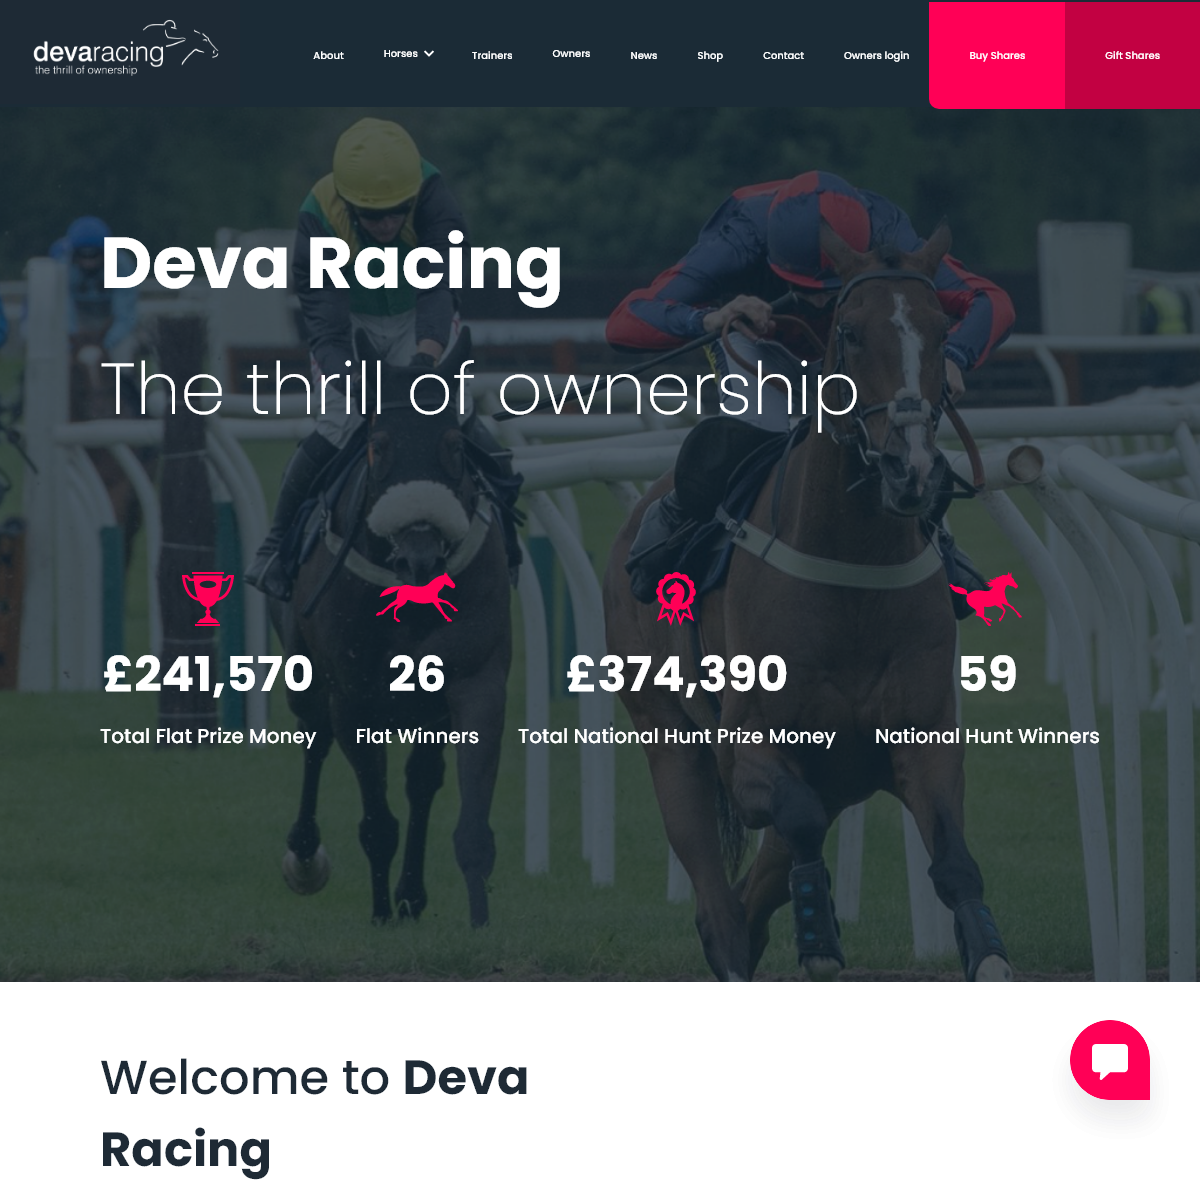 Deva Racing – The thrill of ownership